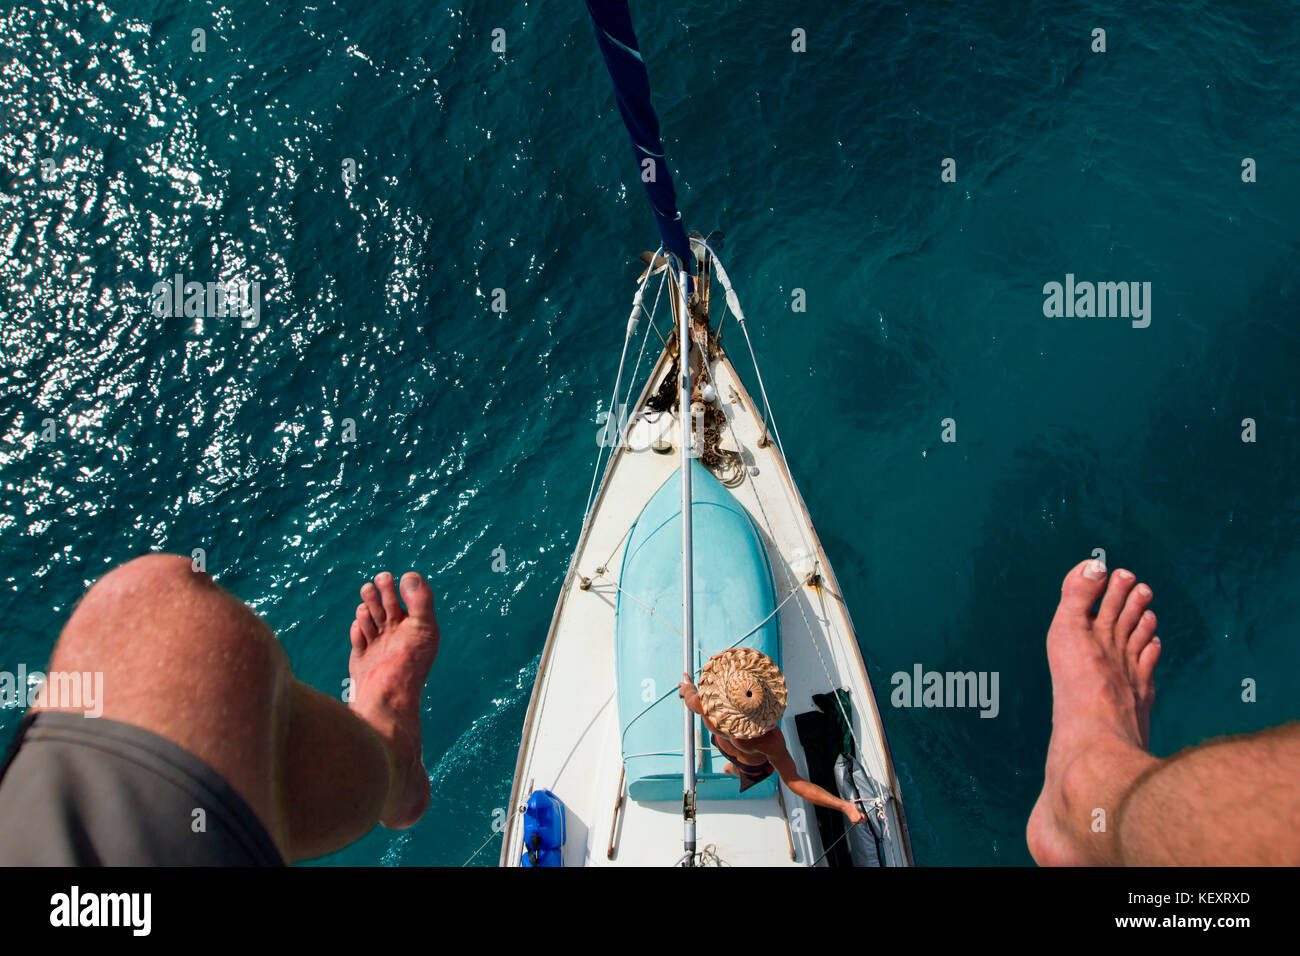 A man leans against the rigging as seen from above and framed by a man's feet on the mast after wrapping the - Stock Image